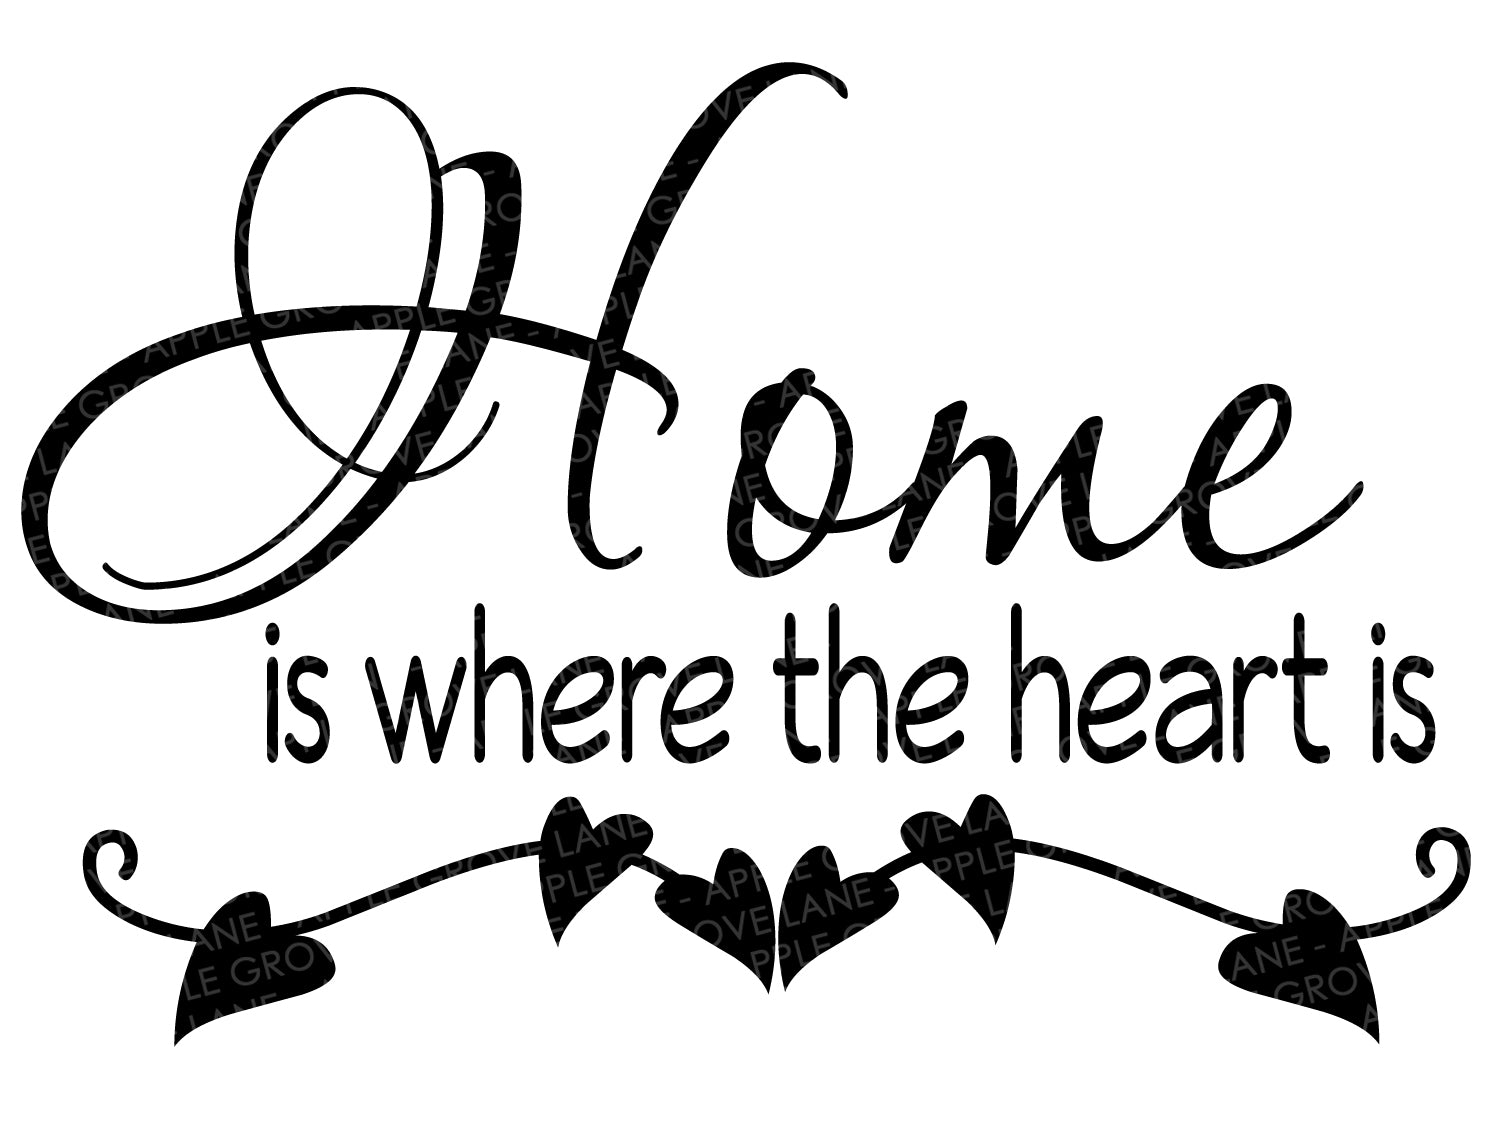 Home is where the heart is SVG - Home Svg - Where the Heart is SVG - Heart Svg - Home Clip Art - Home Heart Cut File - Svg Eps Png Dxf